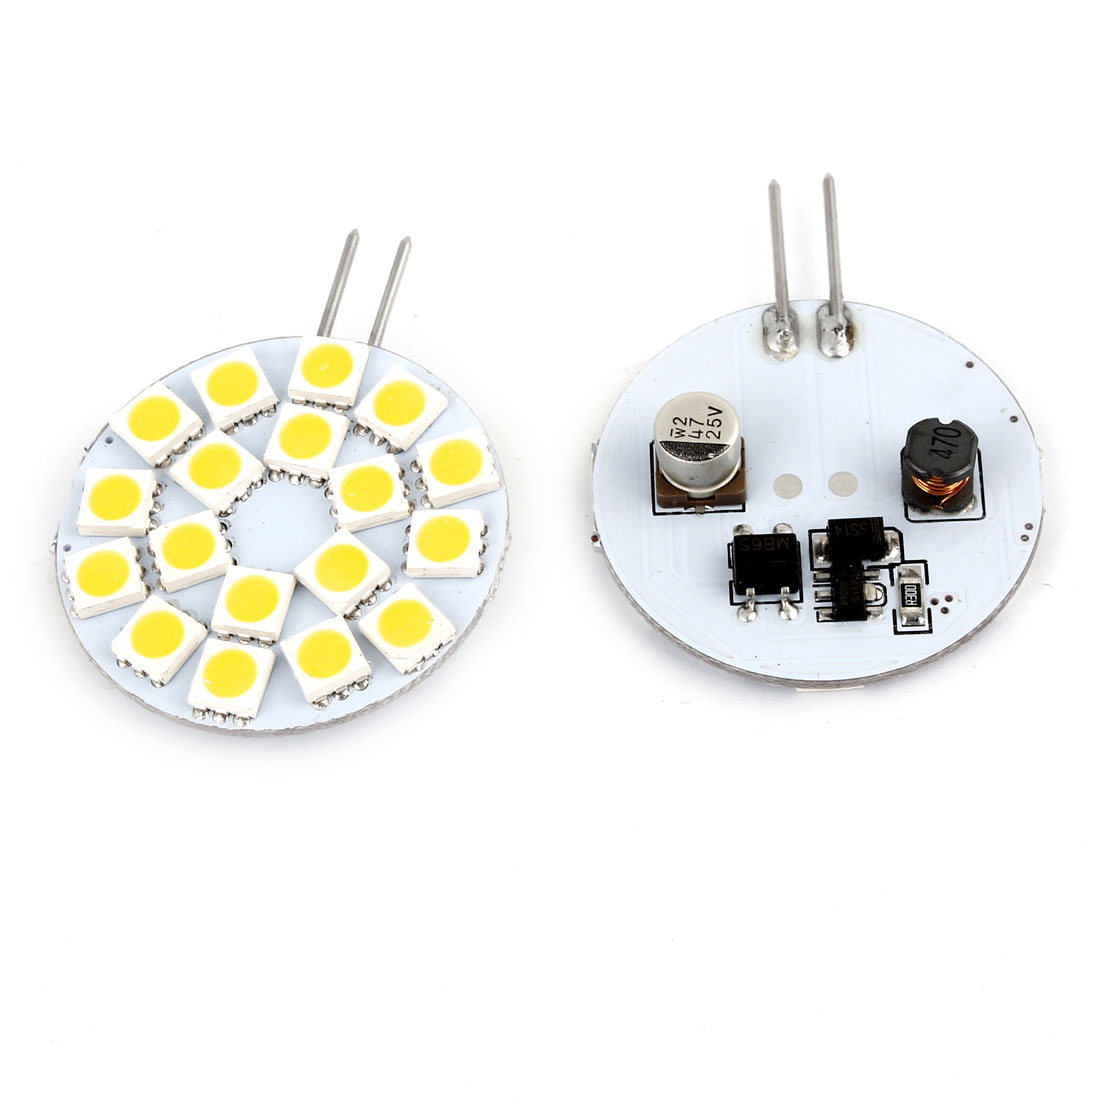 2 Pcs Sdie Pin G4 Warm White 5050 SMD 18 LED Bulb Light Lamp Internal